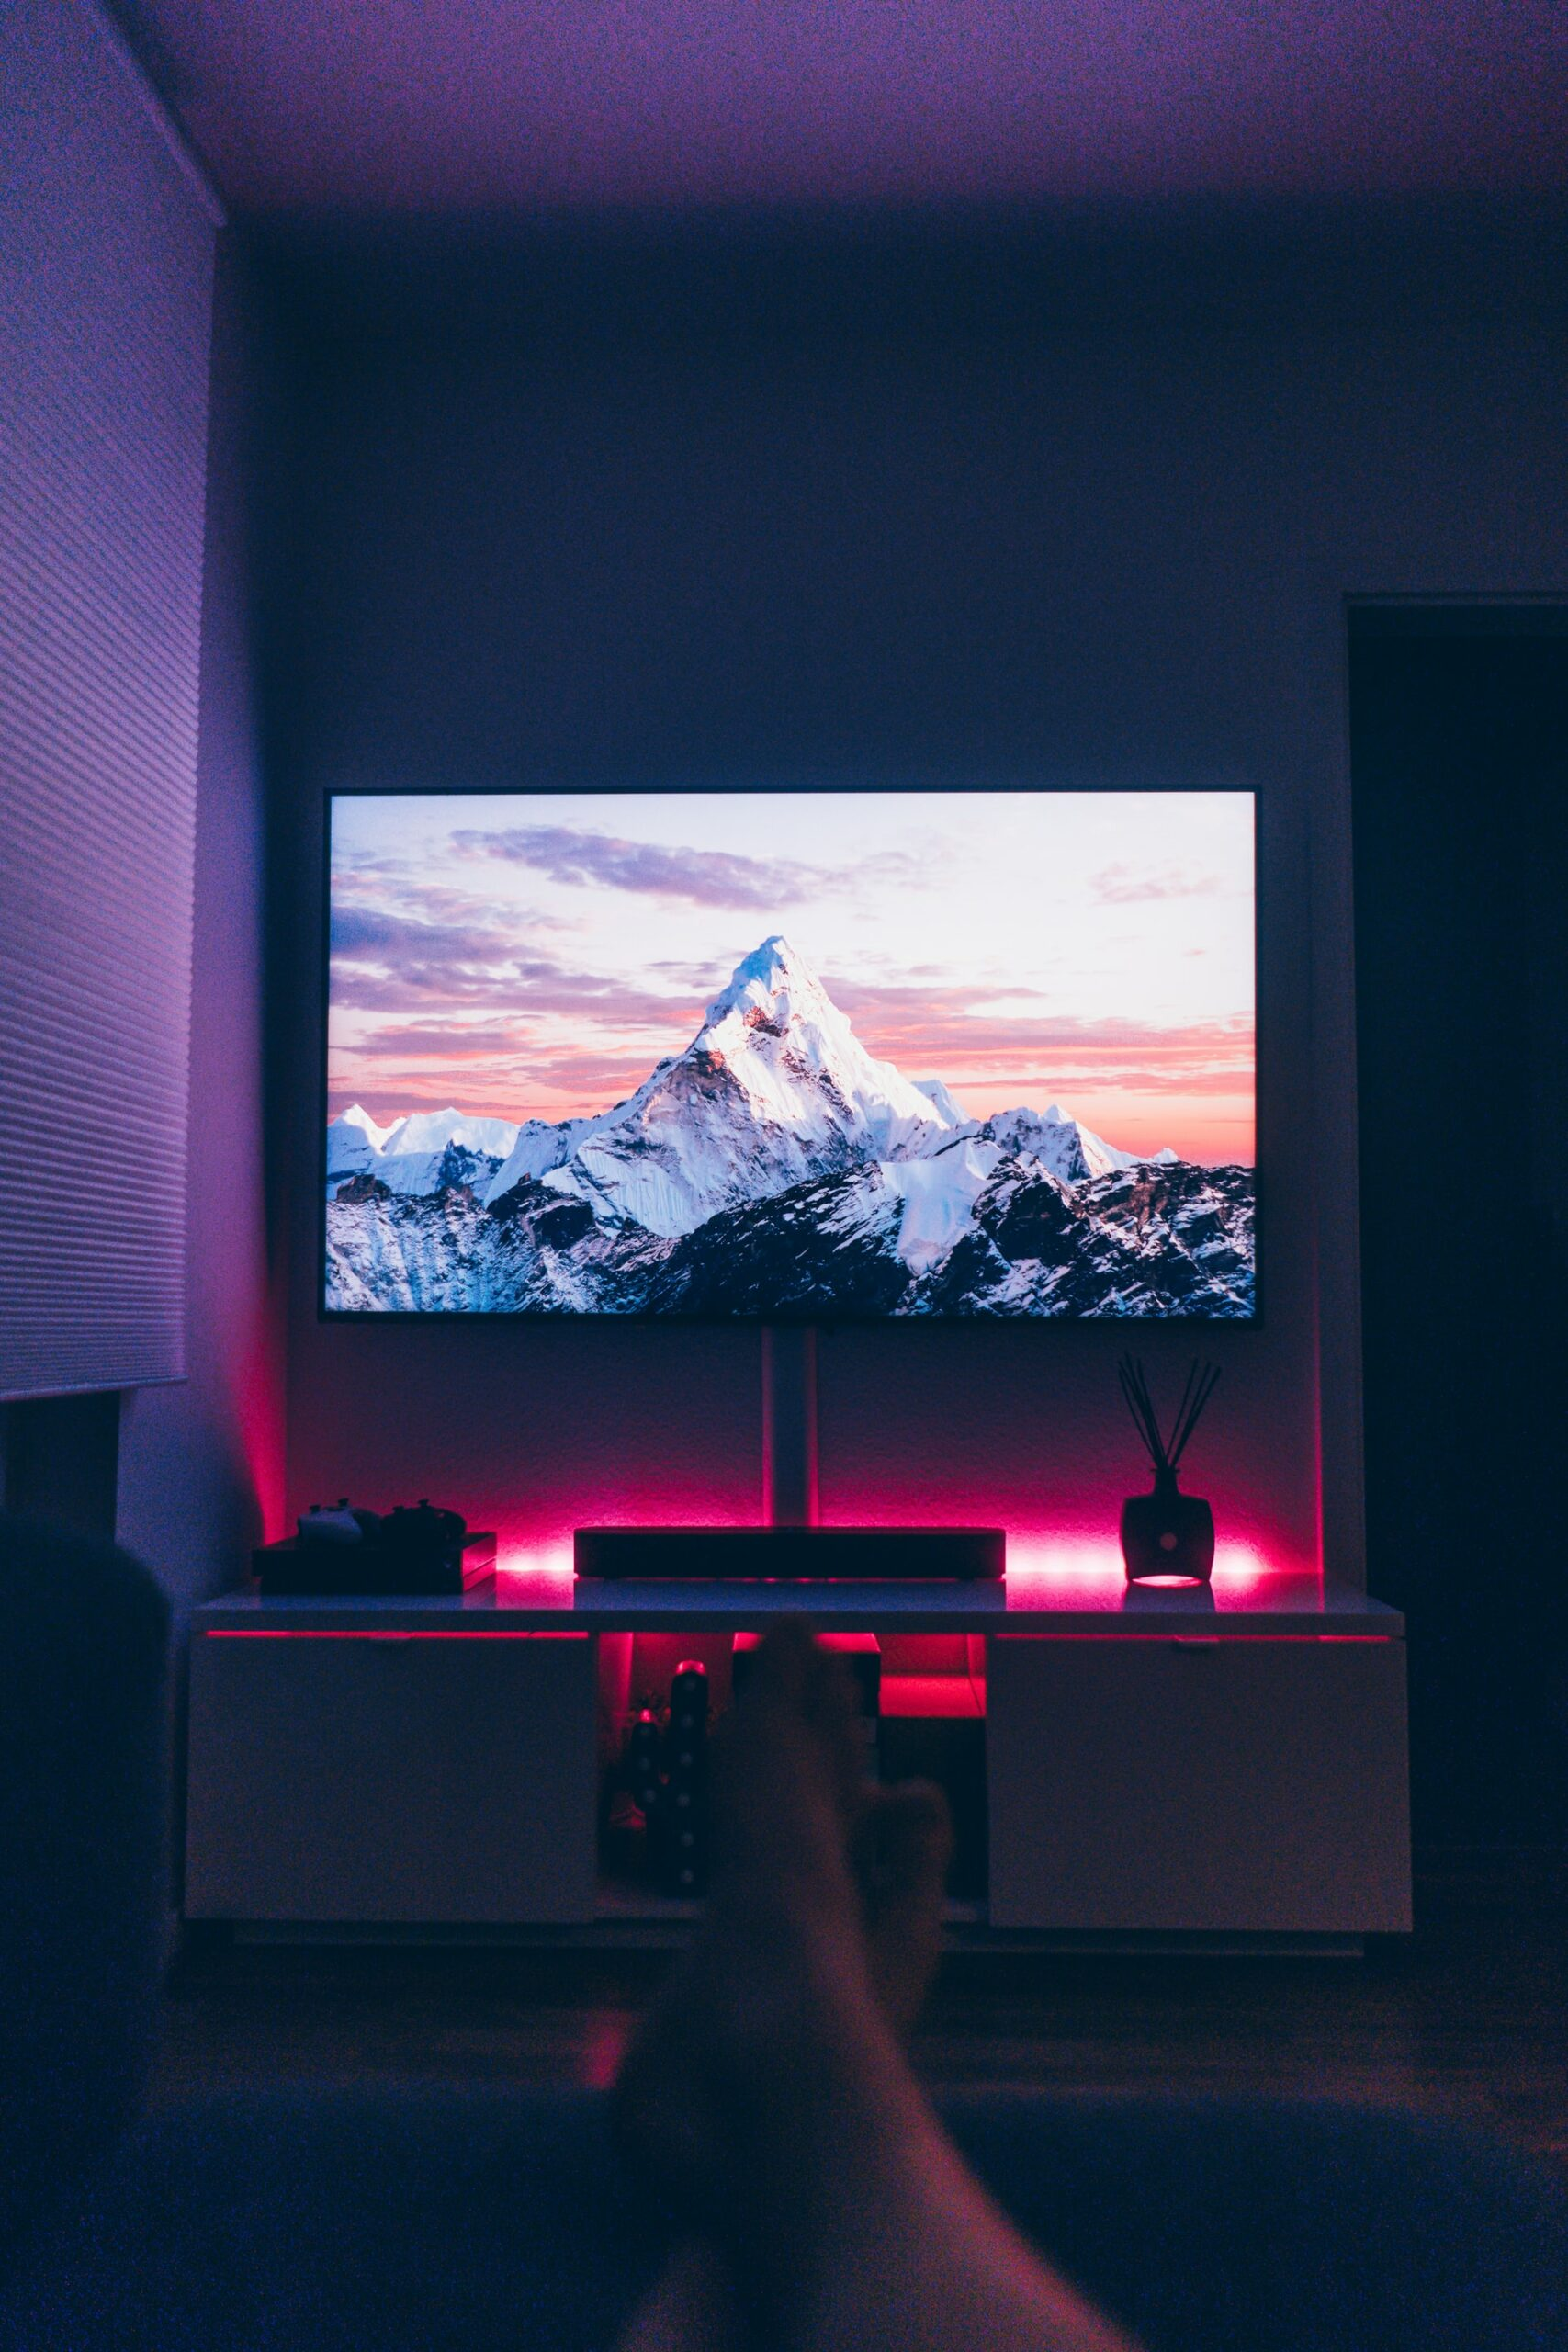 Record Holiday Sales of Connected TV Devices in Q4 Predicted as Pandemic Impact Recedes Brandspurng